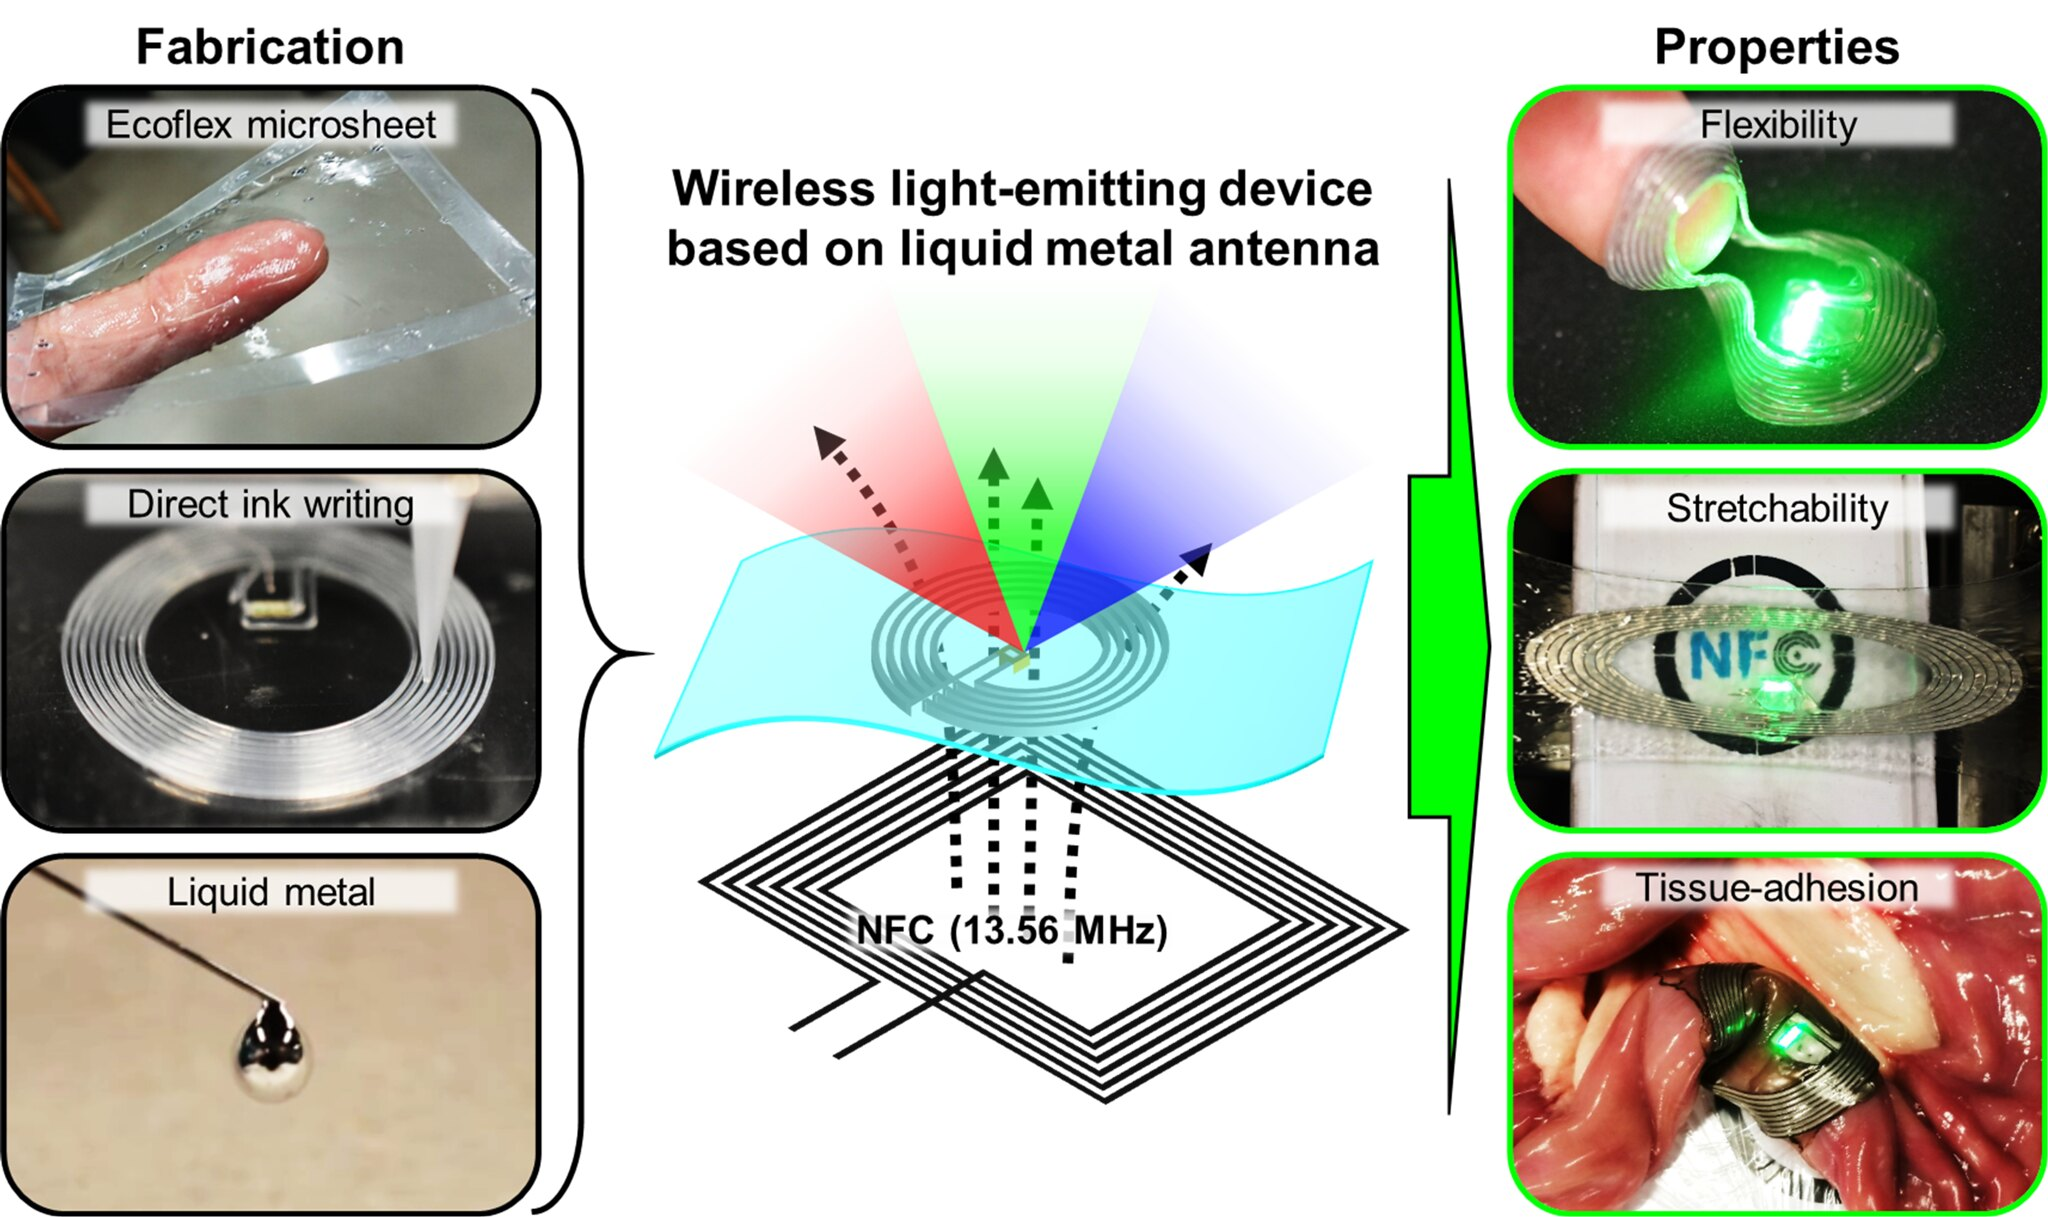 Paper on Liquid Metal Antenna Published